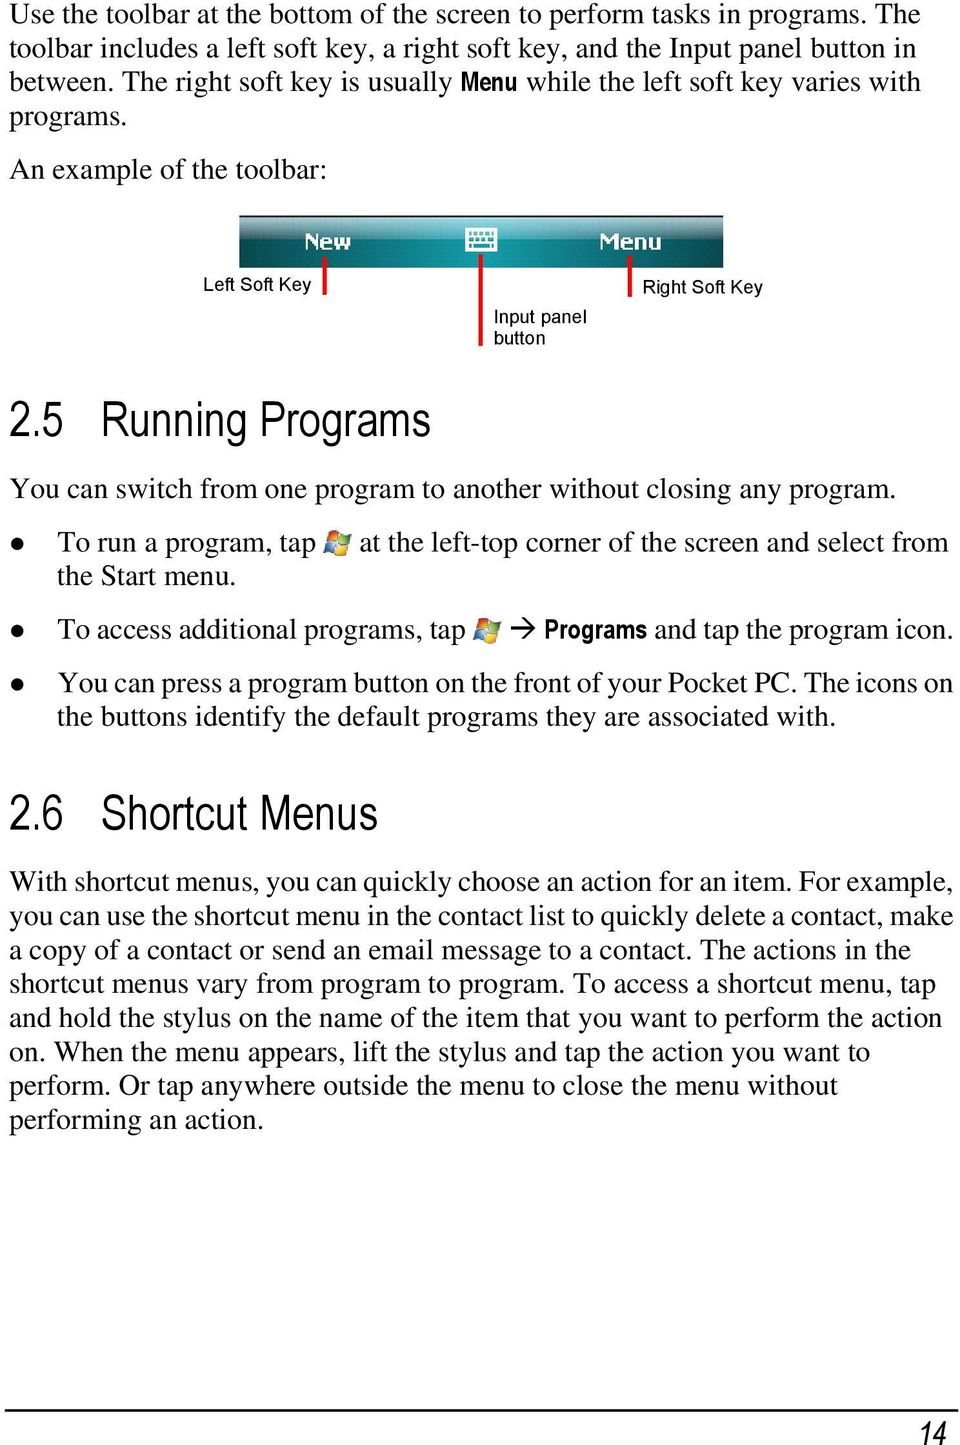 5 Running Programs You can switch from one program to another without closing any program. To run a program, tap at the left-top corner of the screen and select from the Start menu.